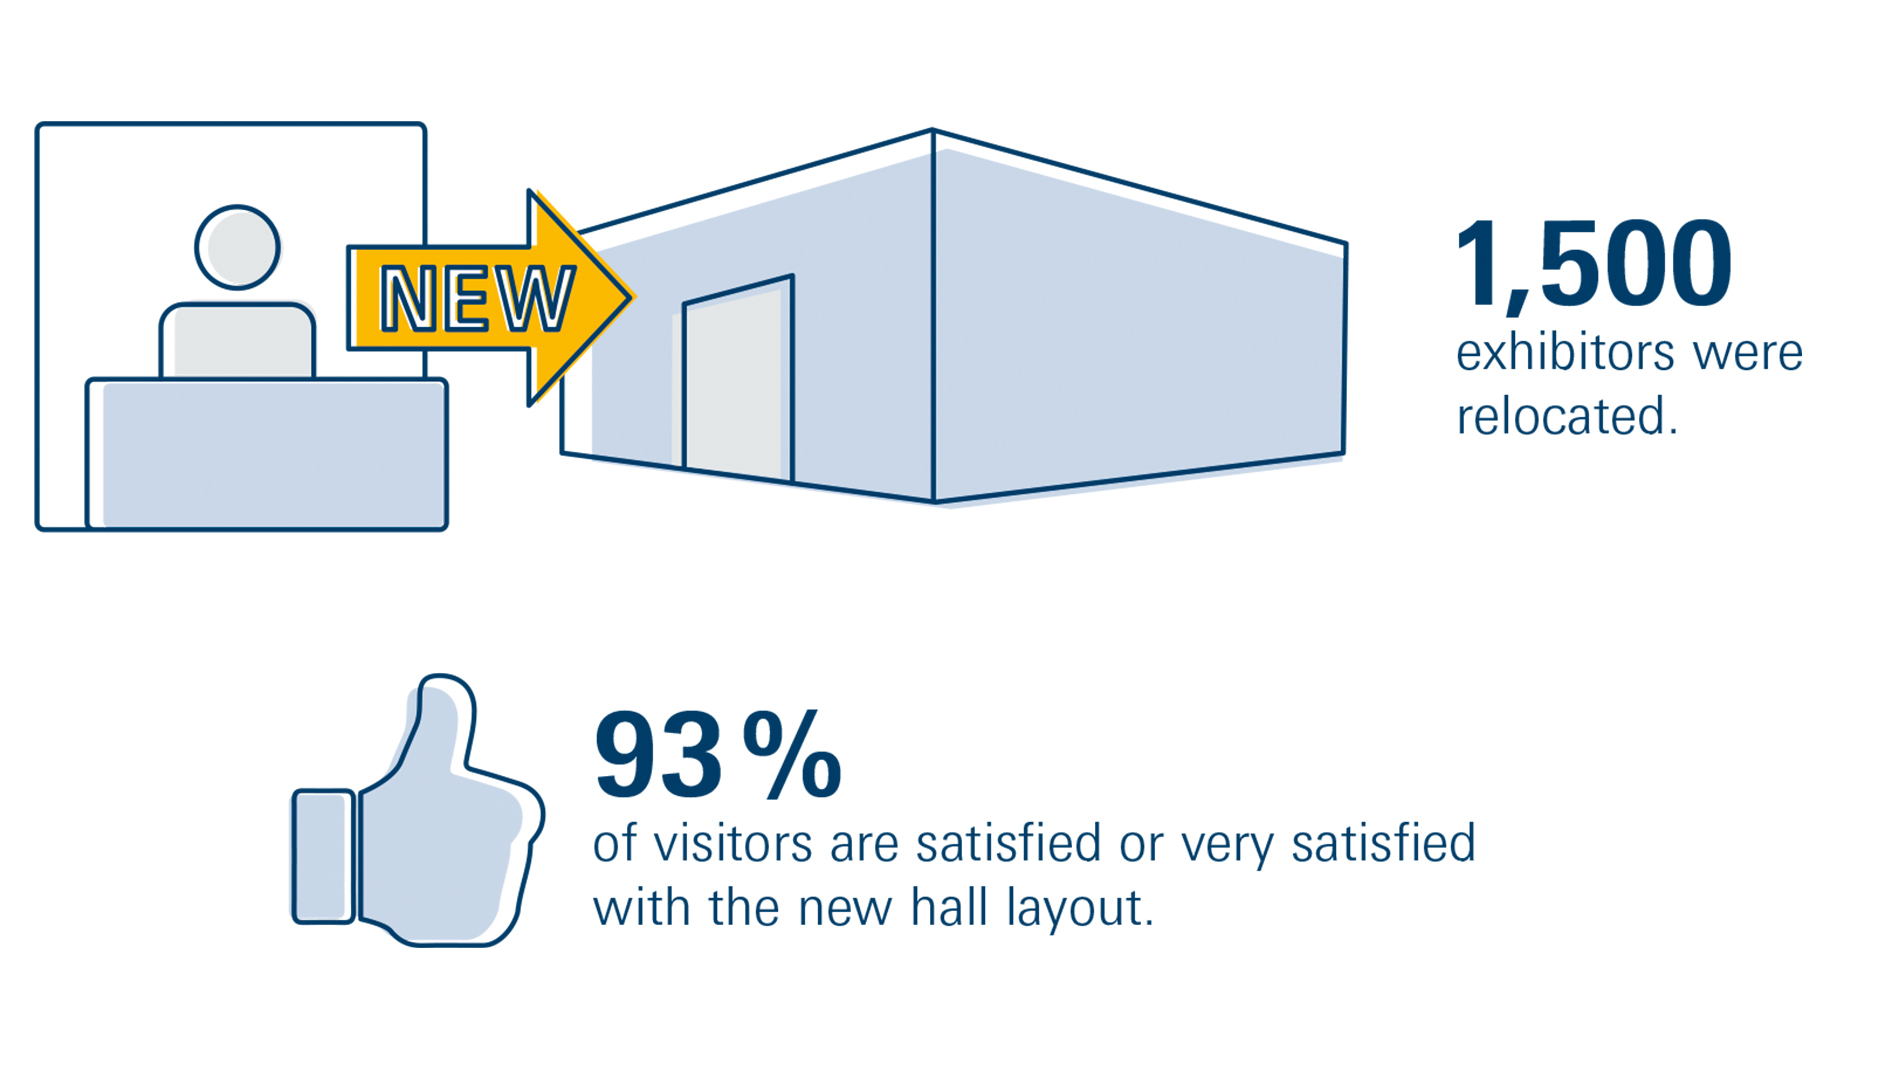 Graphic Satisfaction of visitors